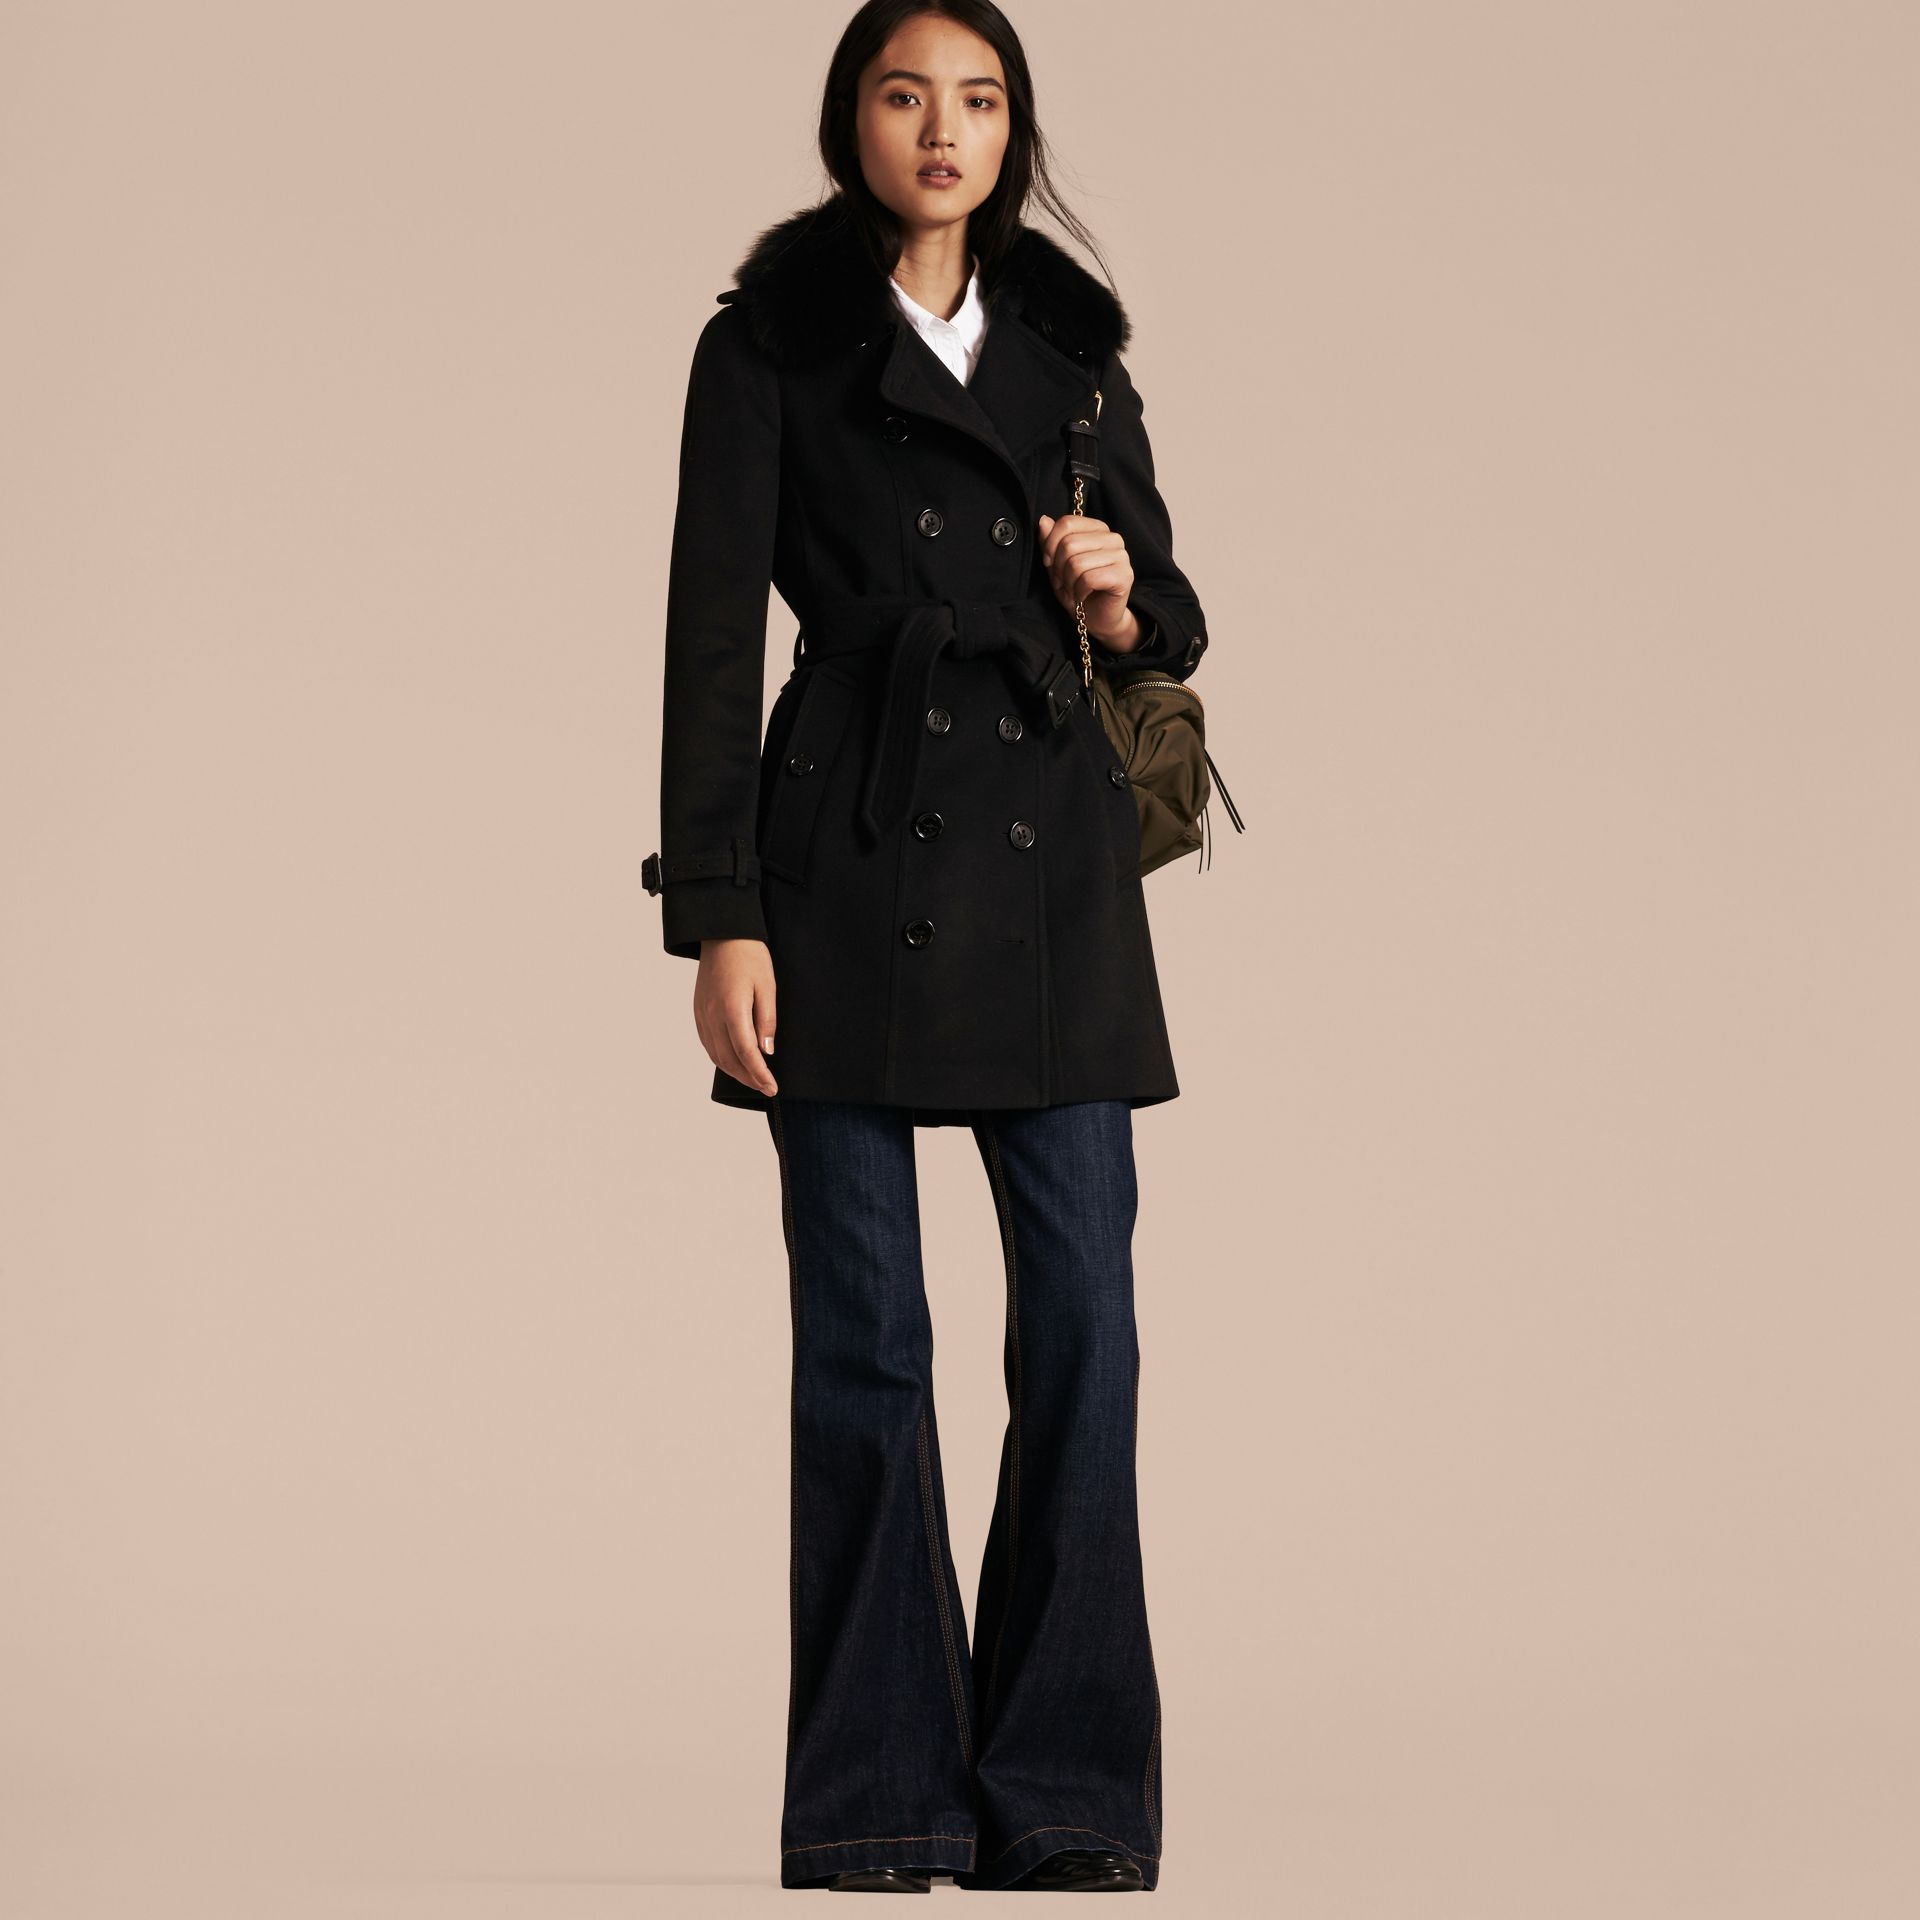 Wool Cashmere Trench Coat with Fur Collar in Black - Women | Burberry Canada - gallery image 1